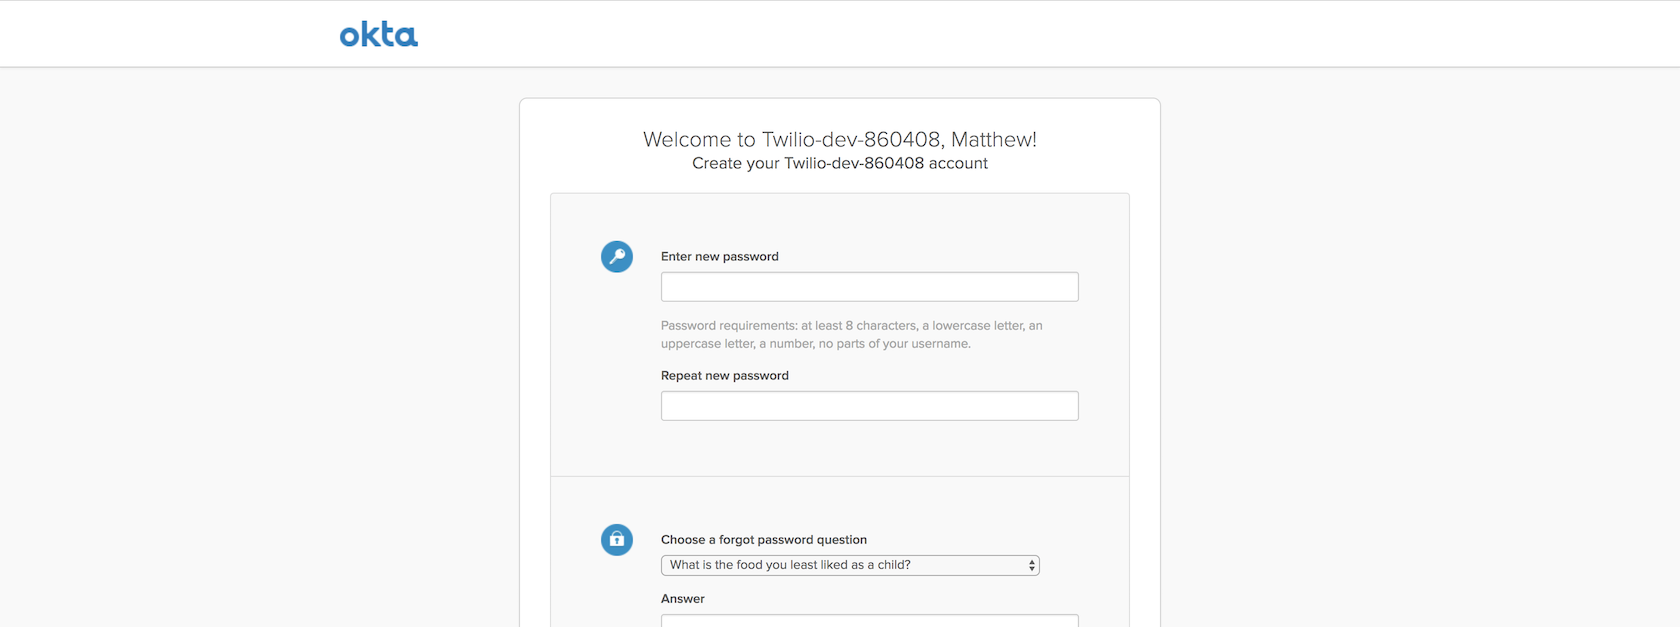 Adding Okta Authentication to an Existing Flask Web App